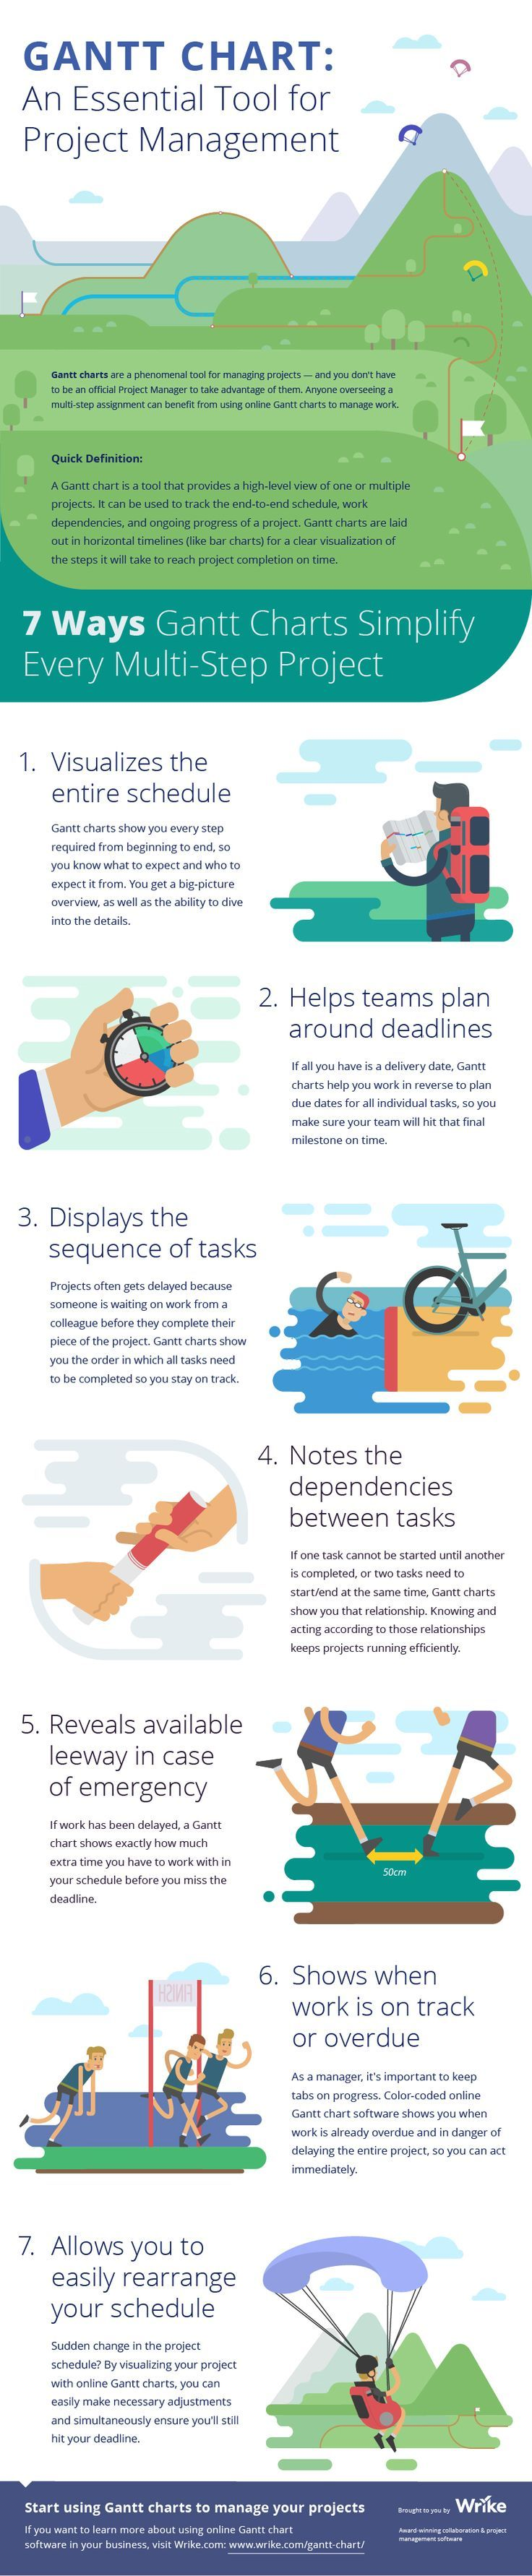 Gantt Chart Software: A Key Tool For Project Management. Read more here: https://www.wrike.com/blog/gantt-chart-software-for-project-management-infographic/?utm_source=pinterest&utm_medium=socials&utm_campaign=blogposts